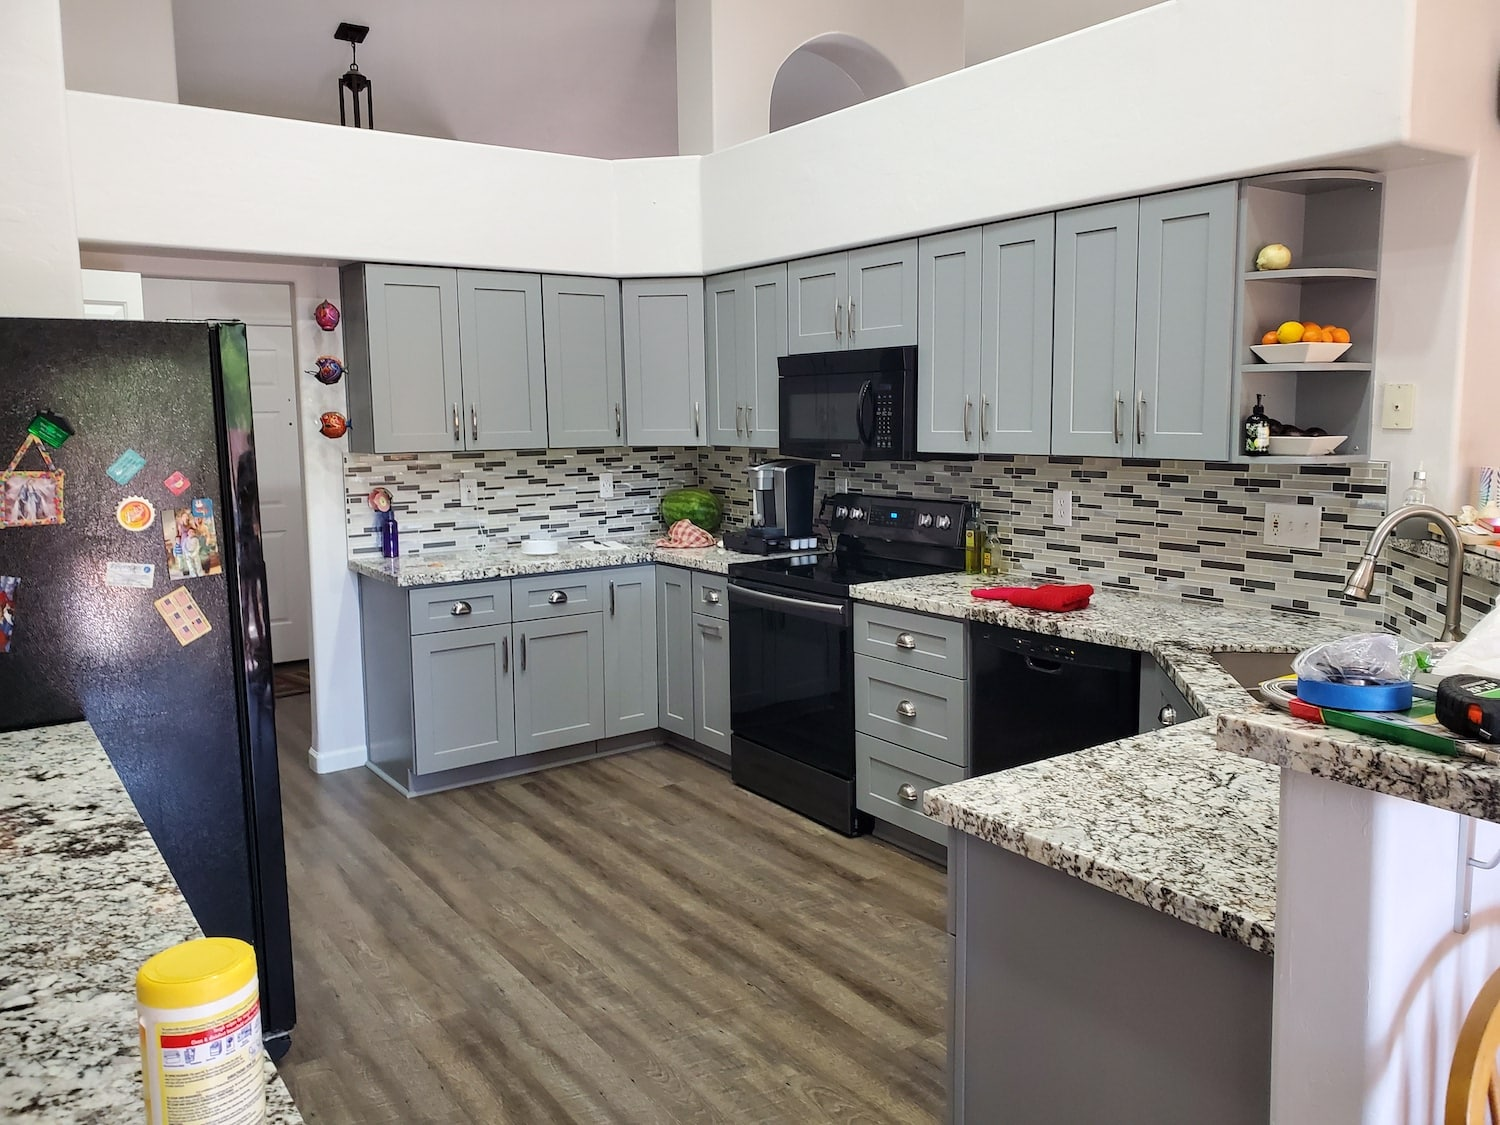 An example of major home renovations in the kitchen area